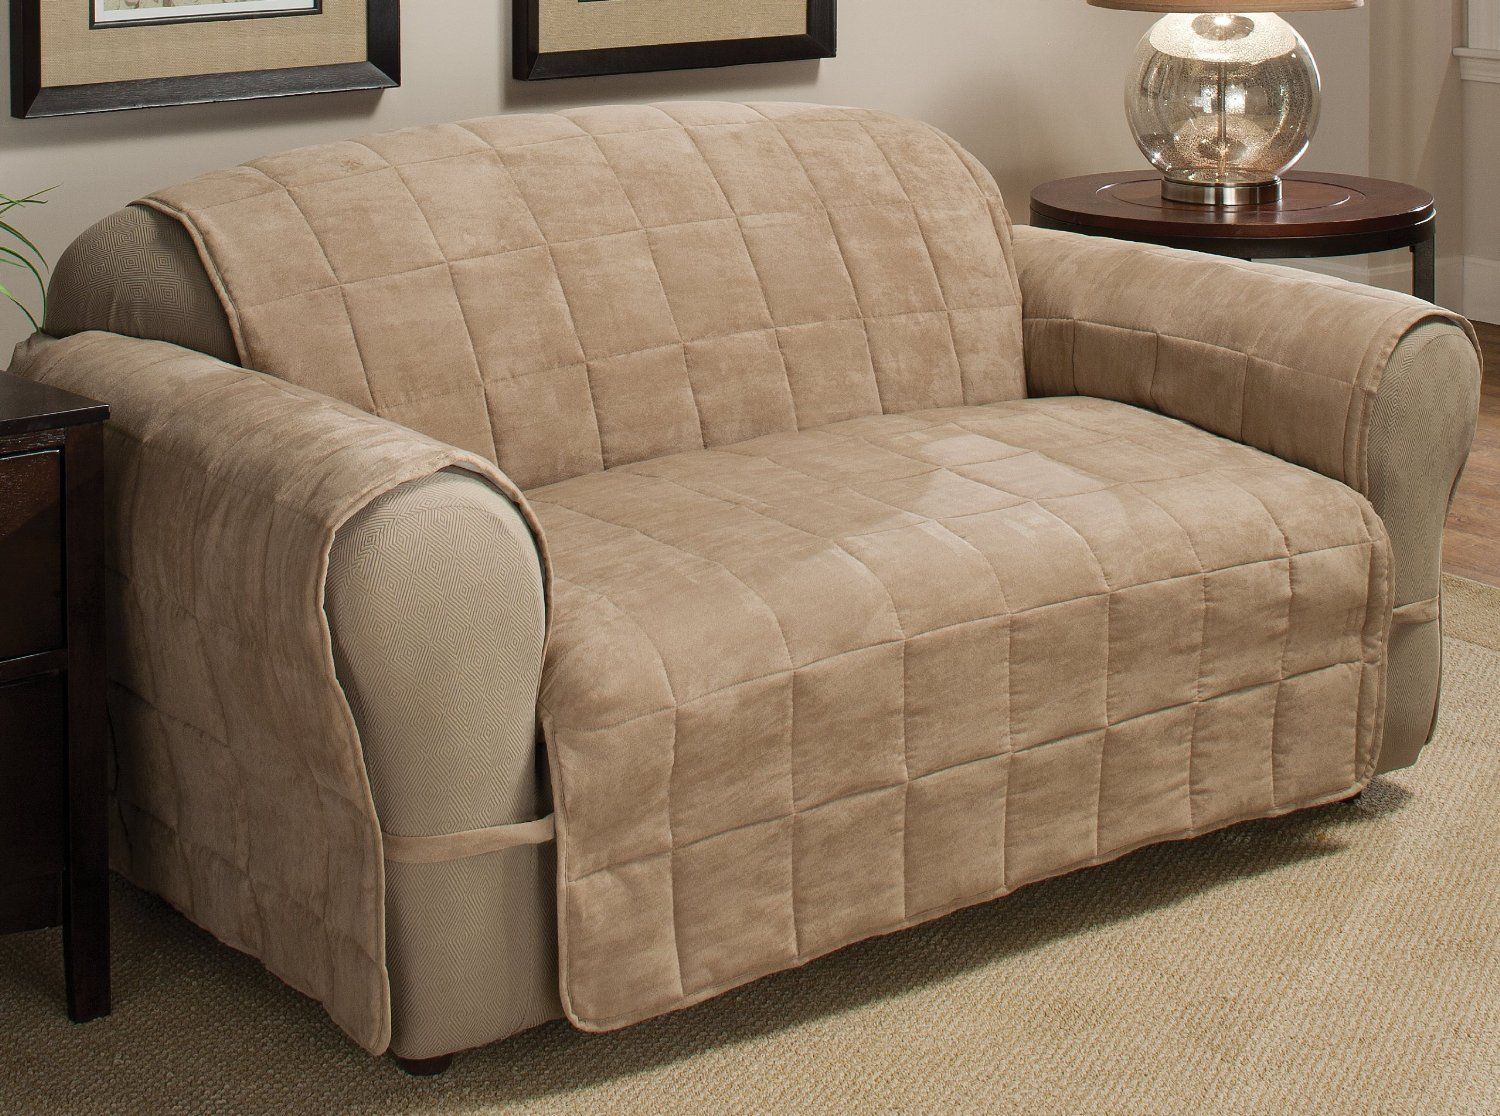 Pin By Sofacouchs On Leather Sofa Suede Sofa Loveseat